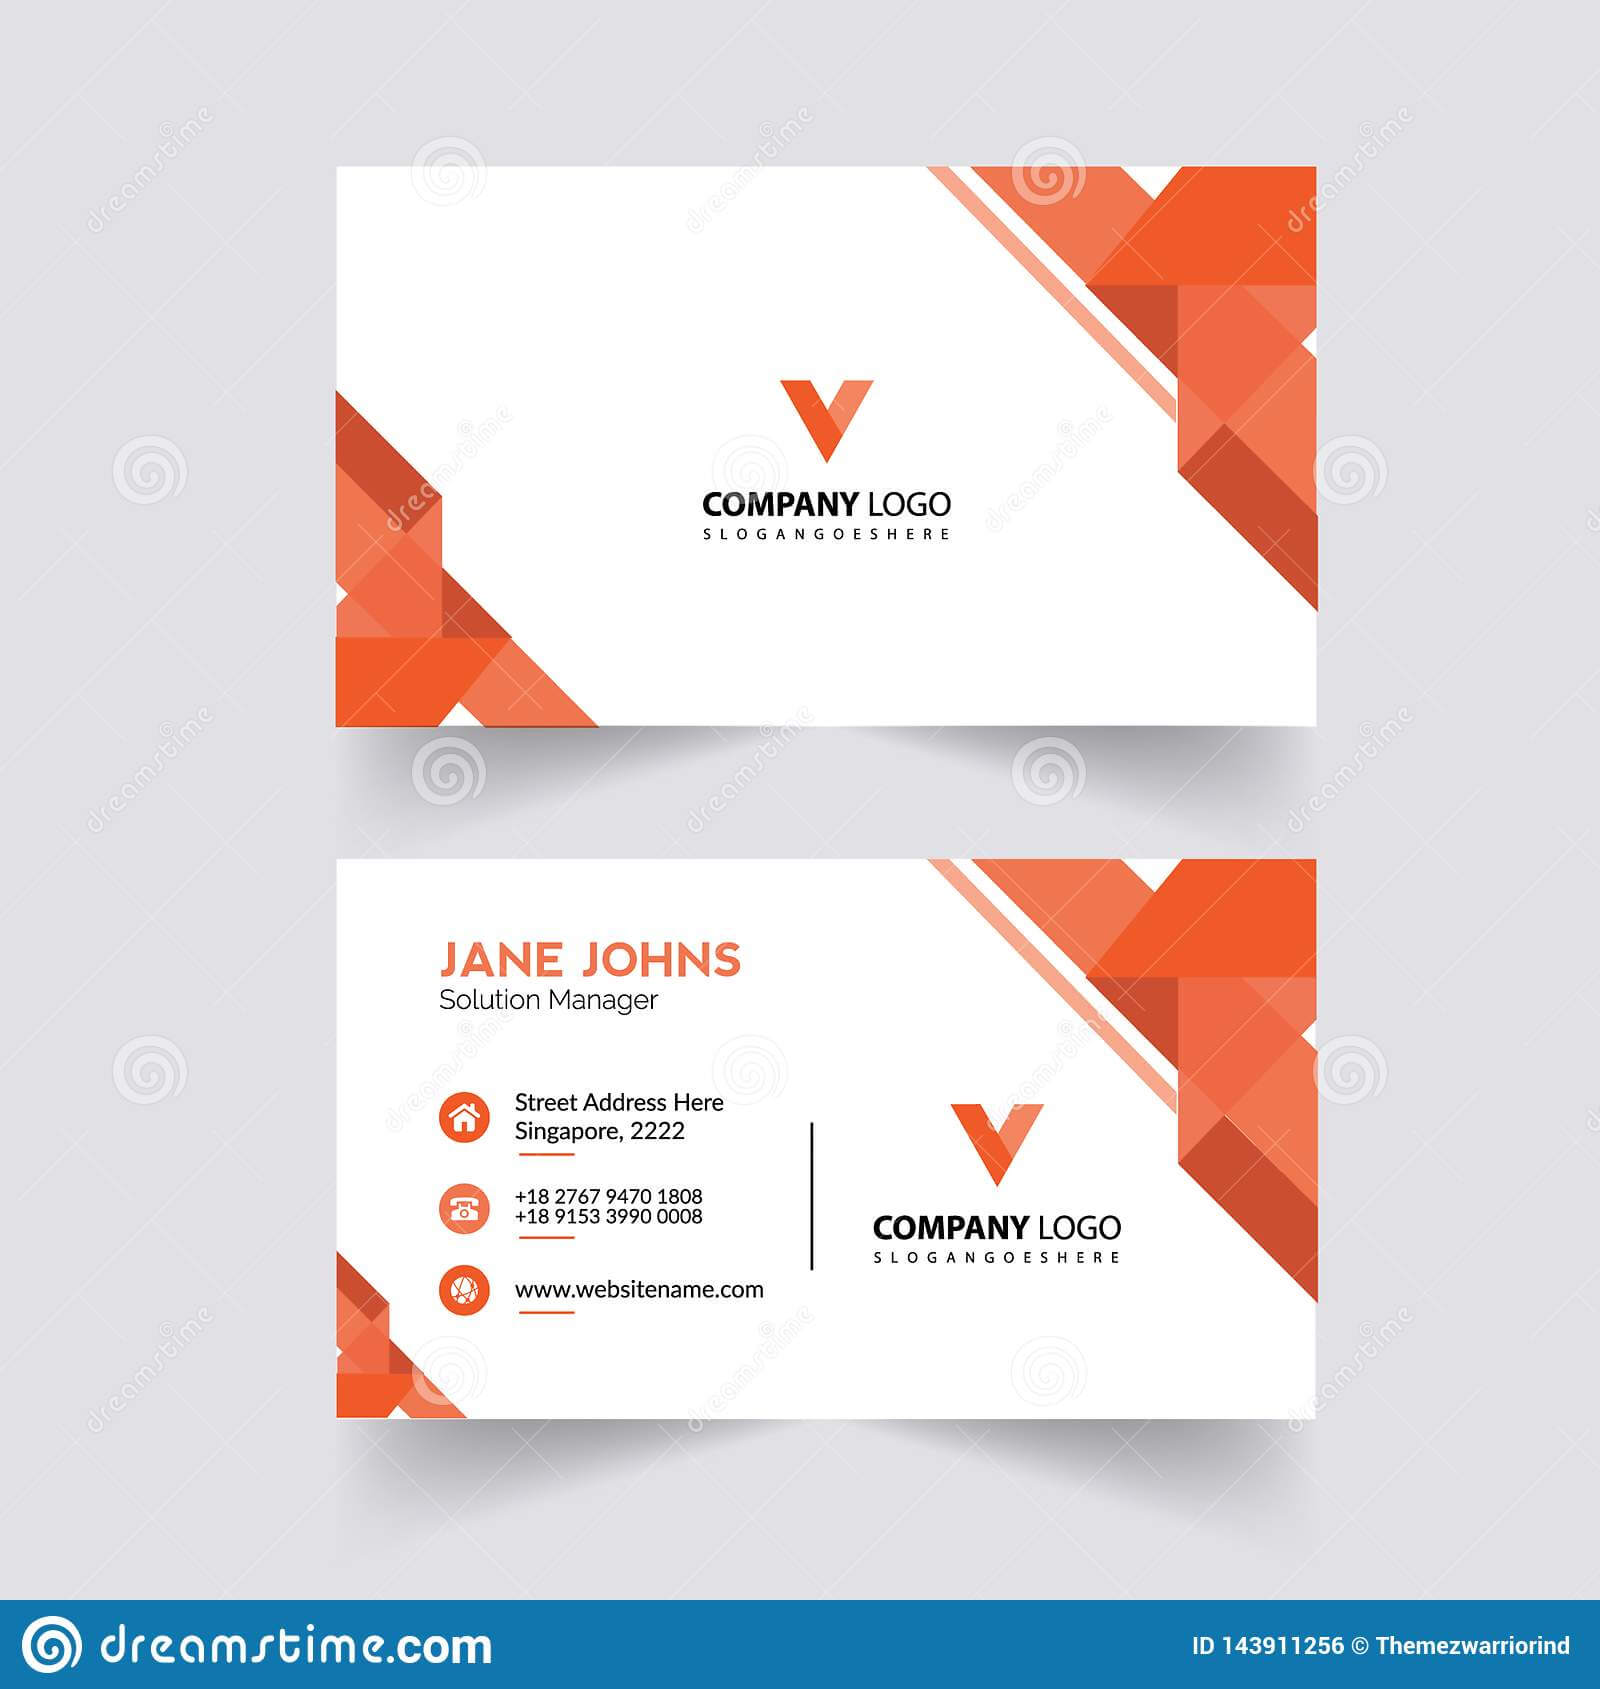 Abstruct Business Card Template Stock Illustration Regarding Adobe Illustrator Business Card Template